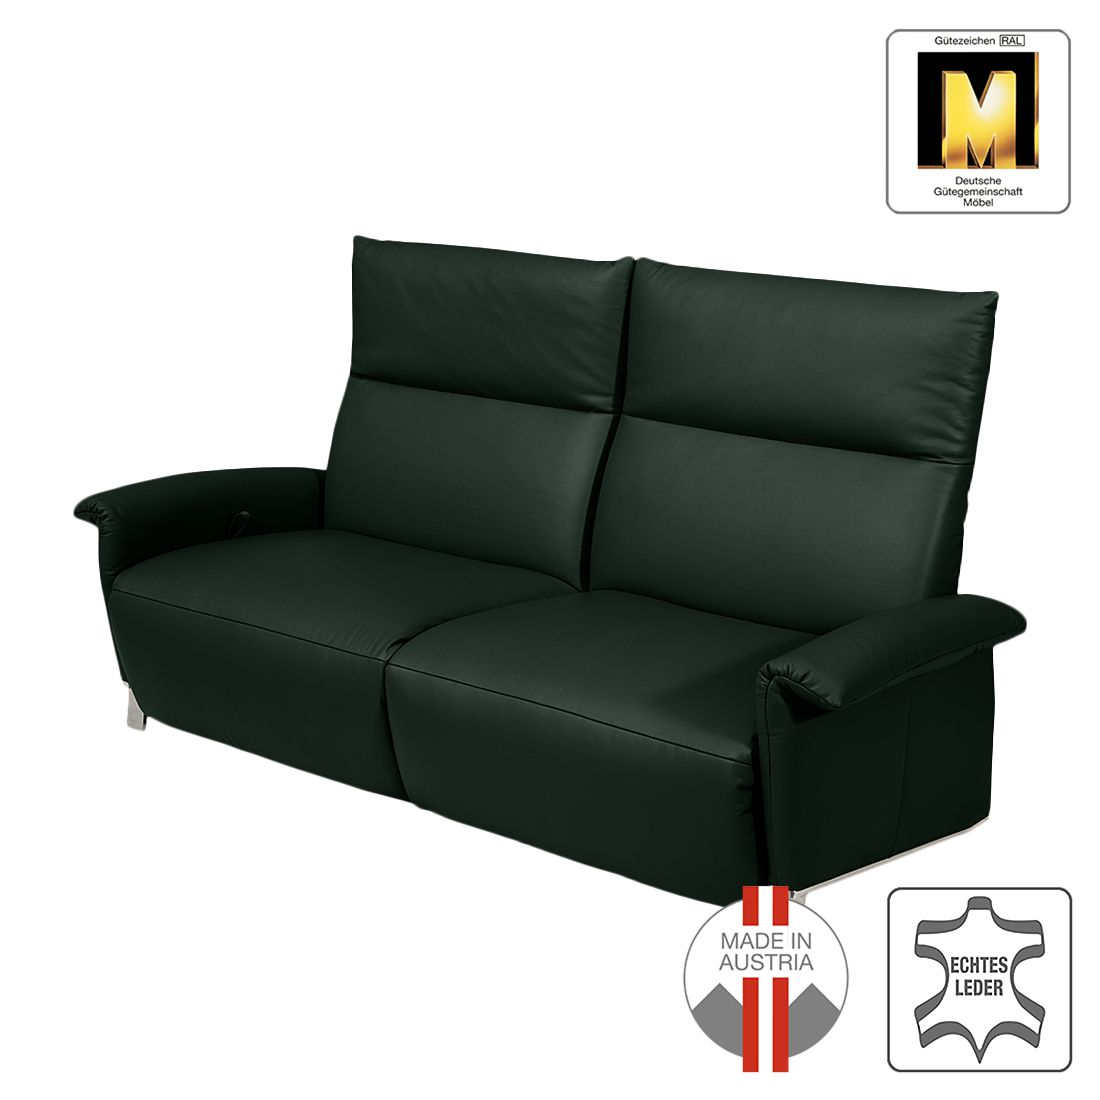 reclinersofa barcelona 2 sitzer echtleder grau ada premium g nstig online kaufen. Black Bedroom Furniture Sets. Home Design Ideas